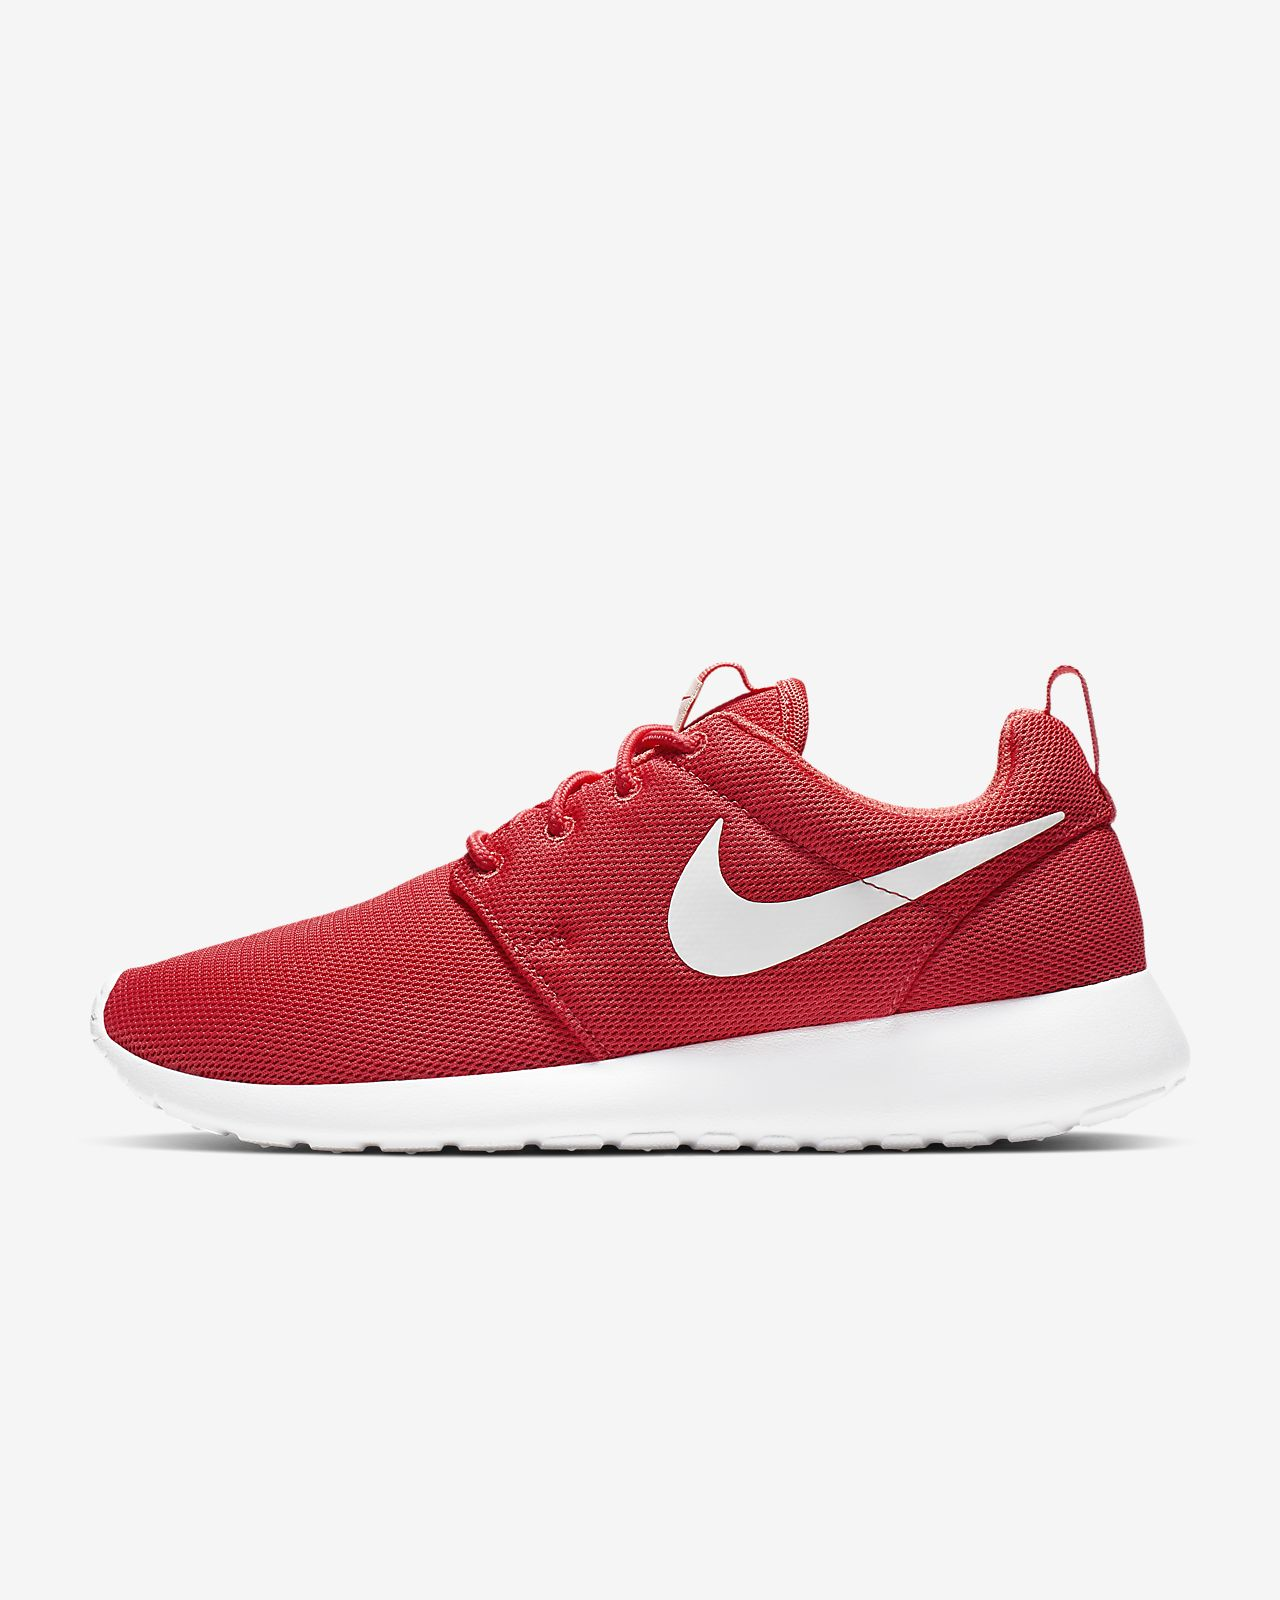 04313338306e Nike Roshe One Women s Shoe. Nike.com